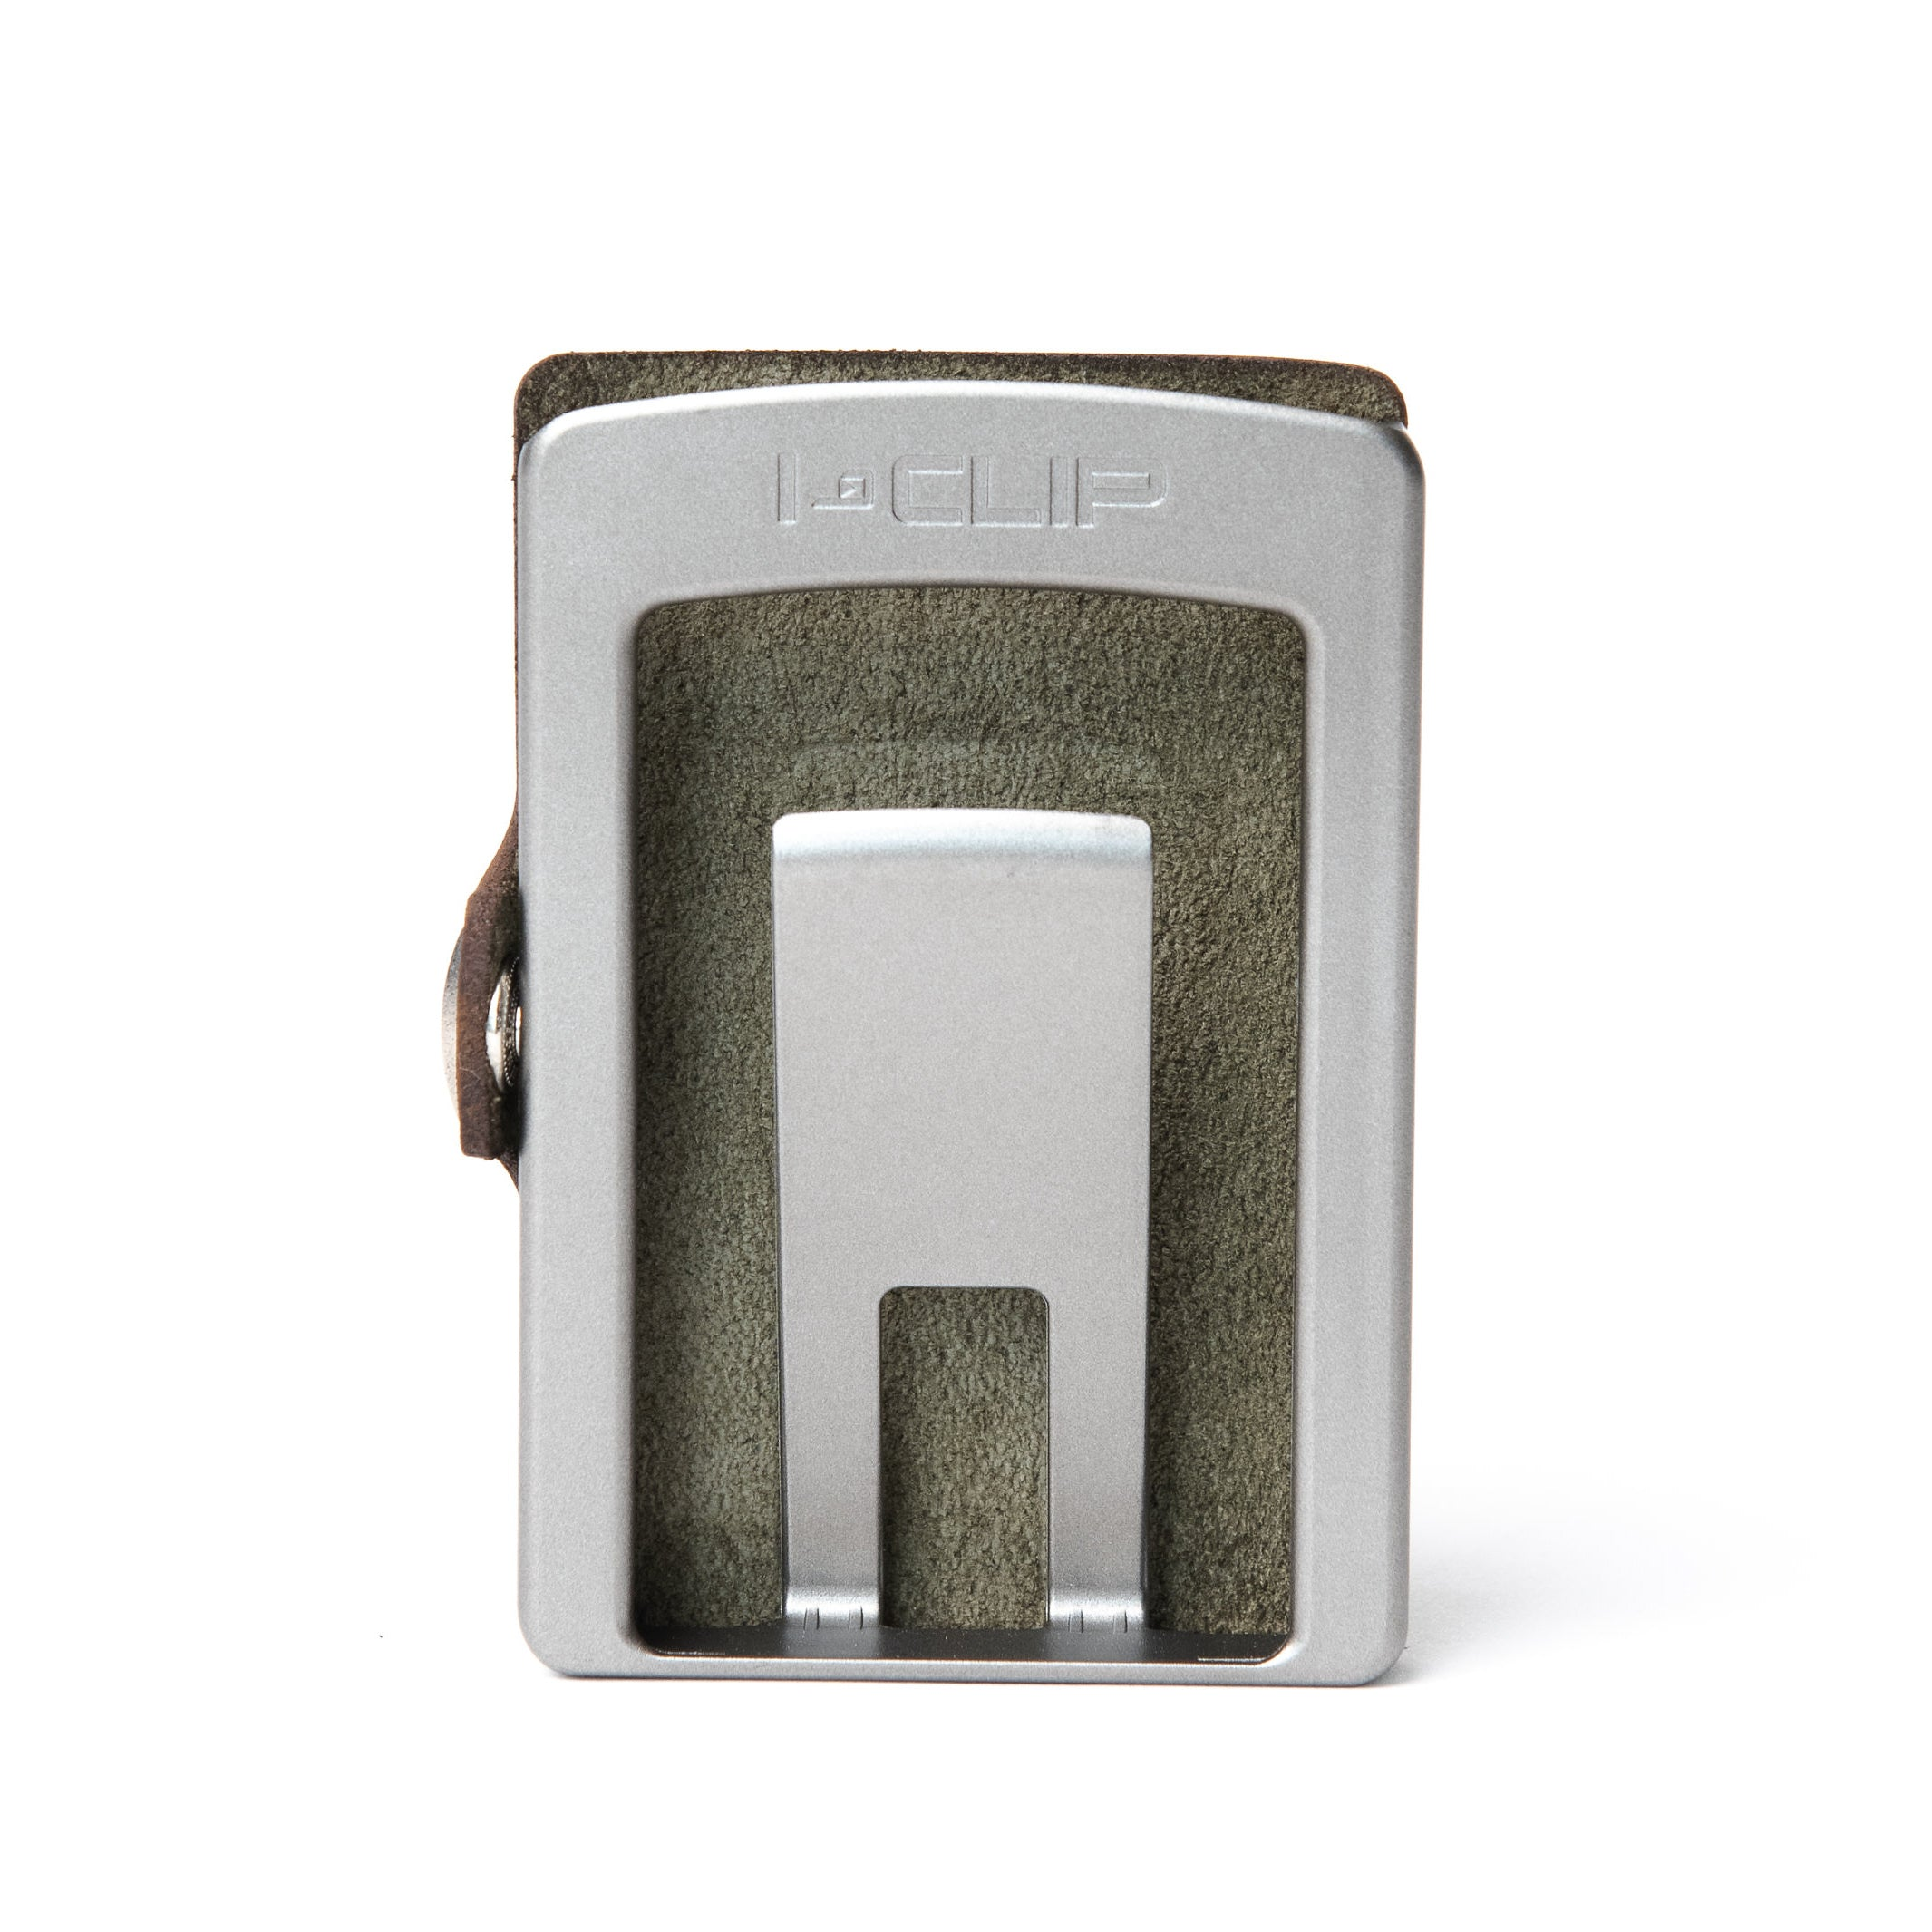 I-CLIP - Soft Touch Leather - Olive / Metallic Gray Frame - I-CLIP